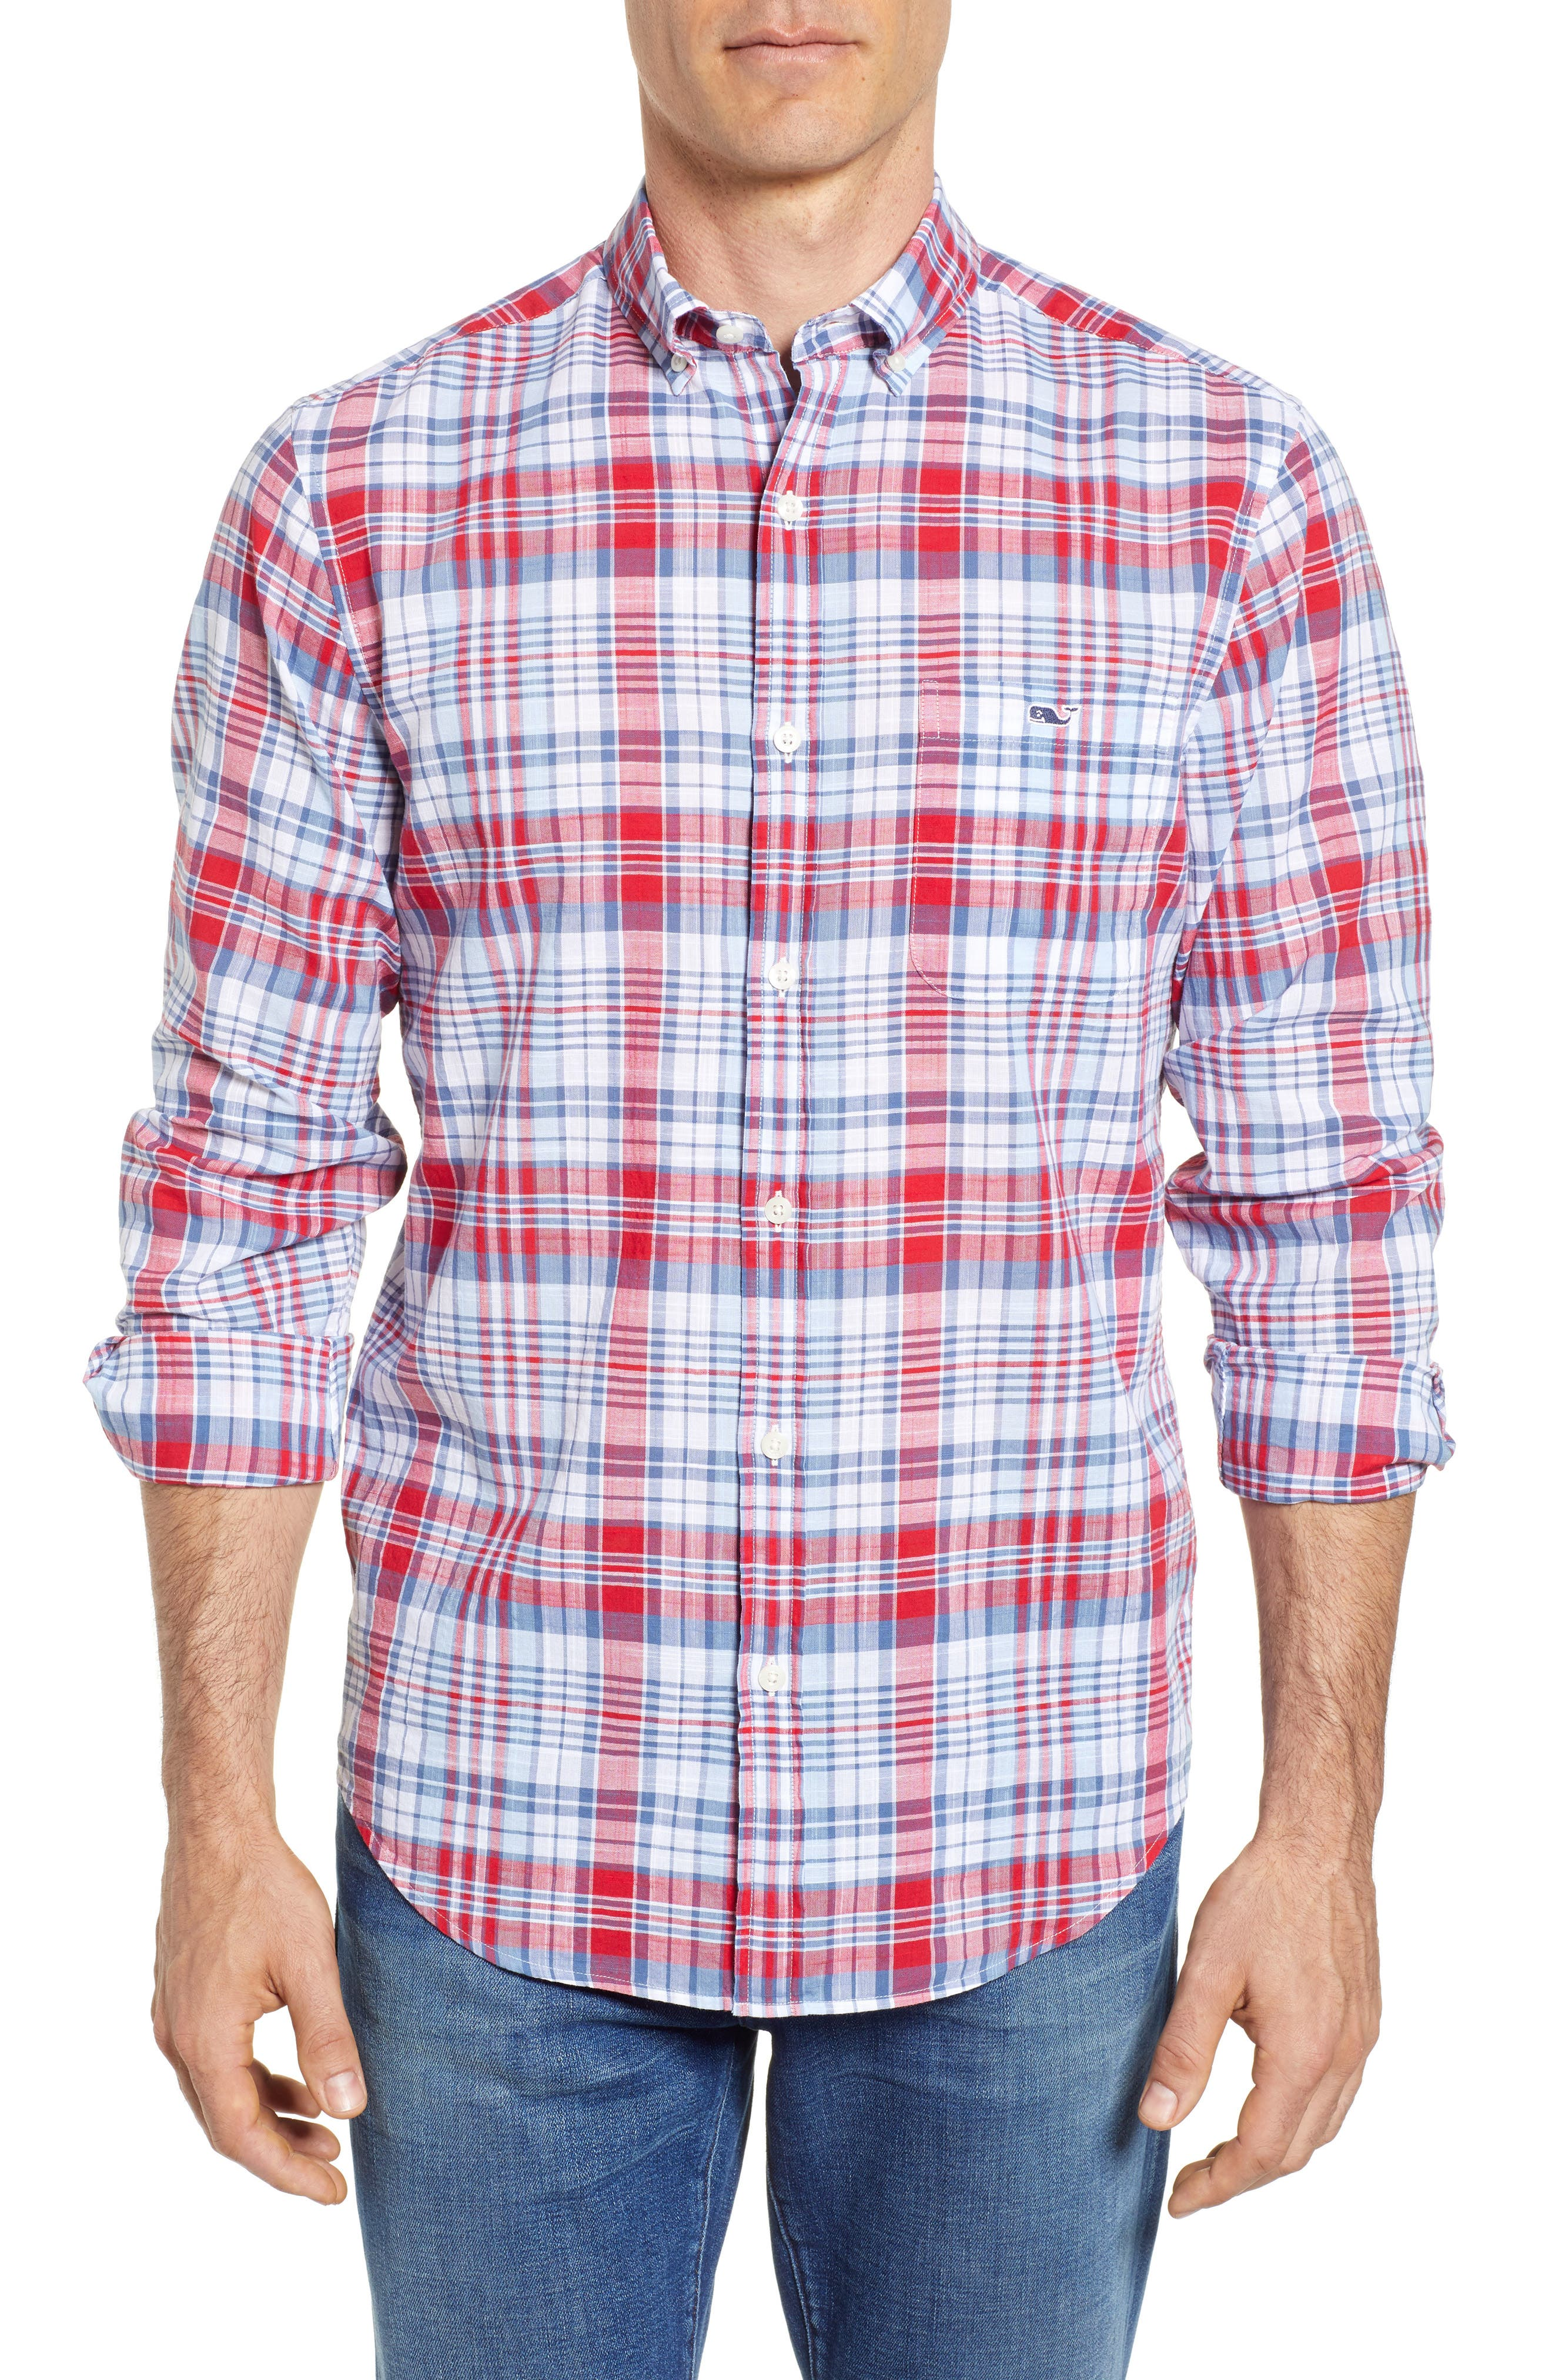 Firework Plaid Tucker Classic Fit Sport Shirt,                         Main,                         color, LIGHTHOUSE RED